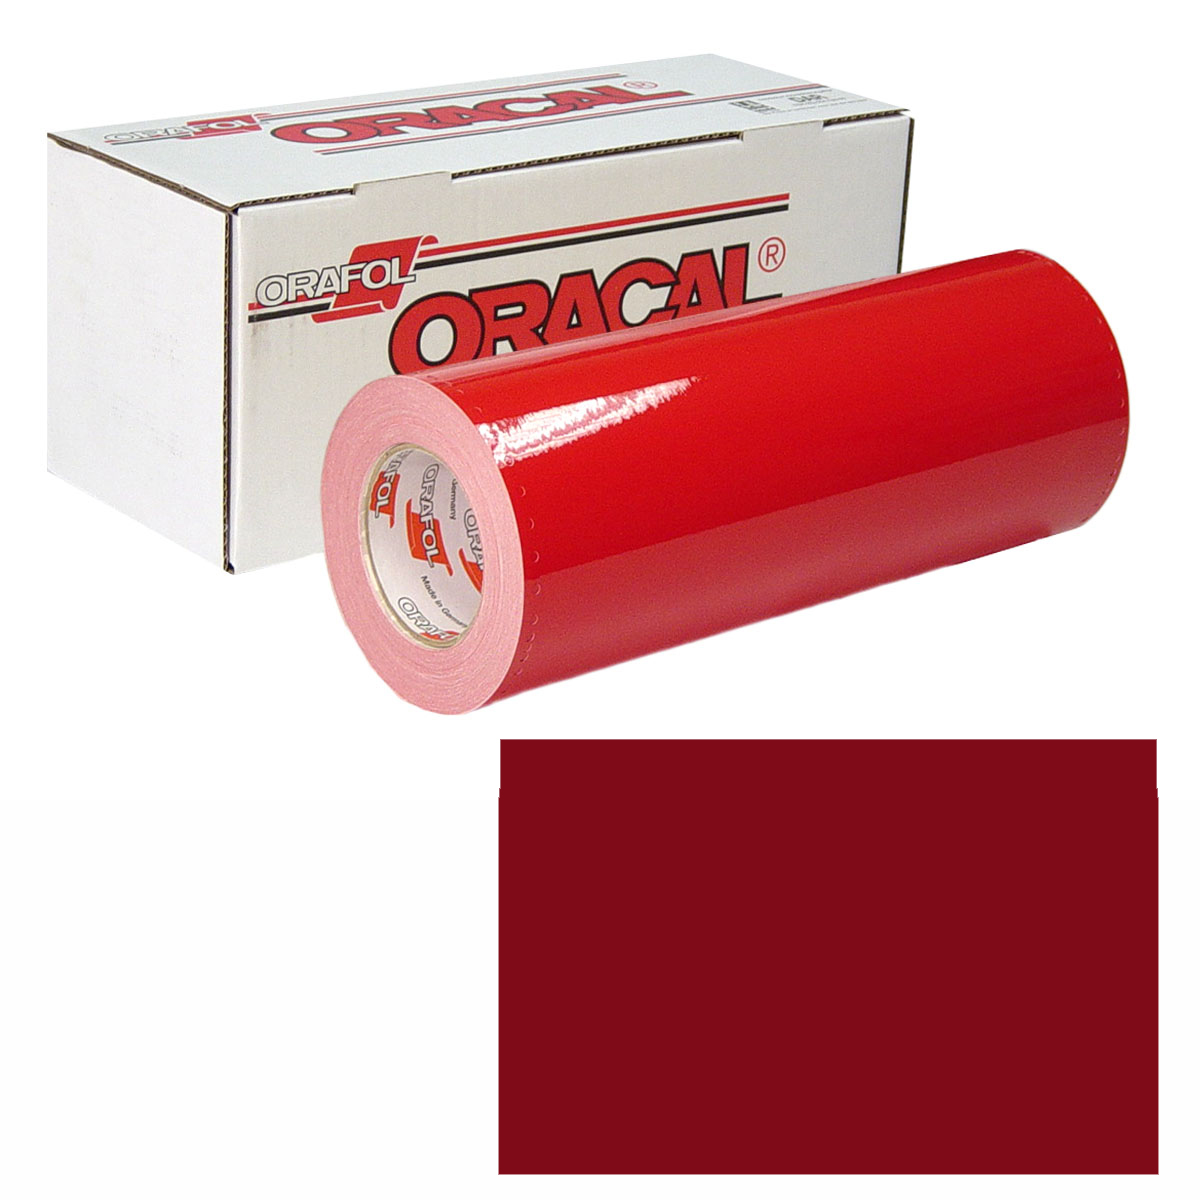 ORACAL 951M 30in X 10yd 367 Red Metallic